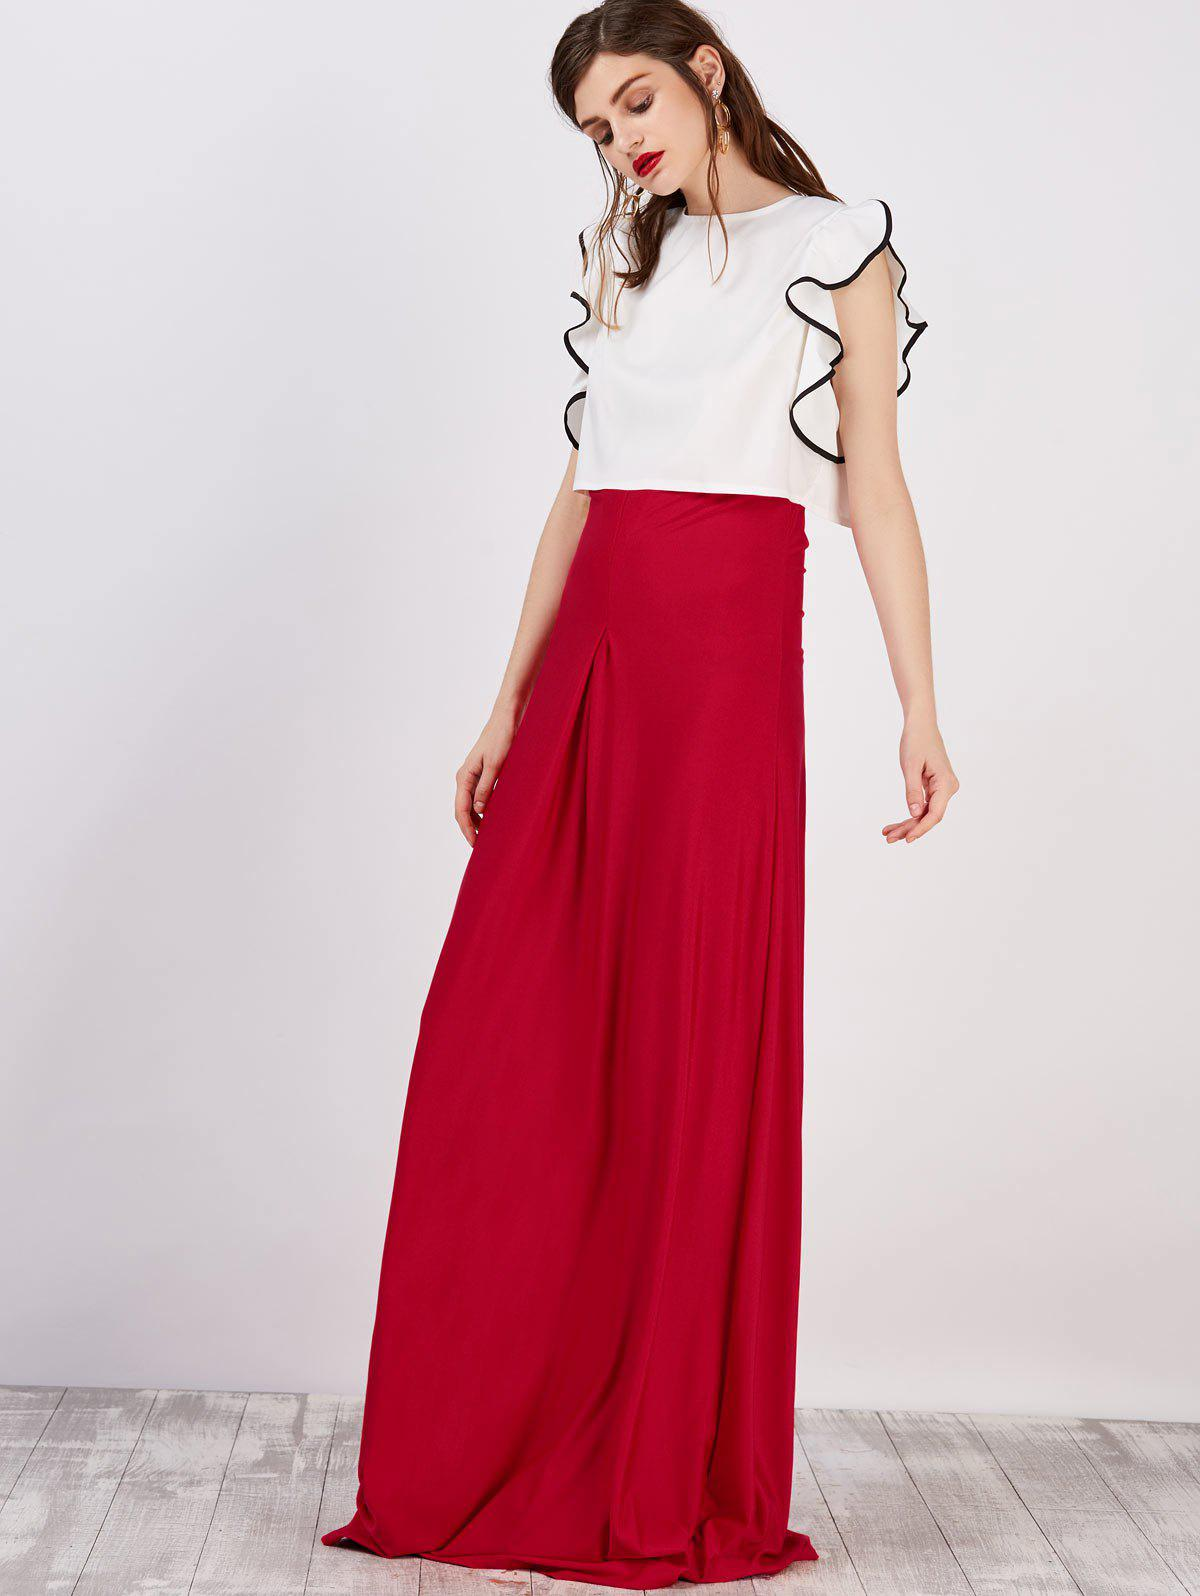 2018 Strapless Maxi Dress With Cape RED XL In Maxi Dresses ...